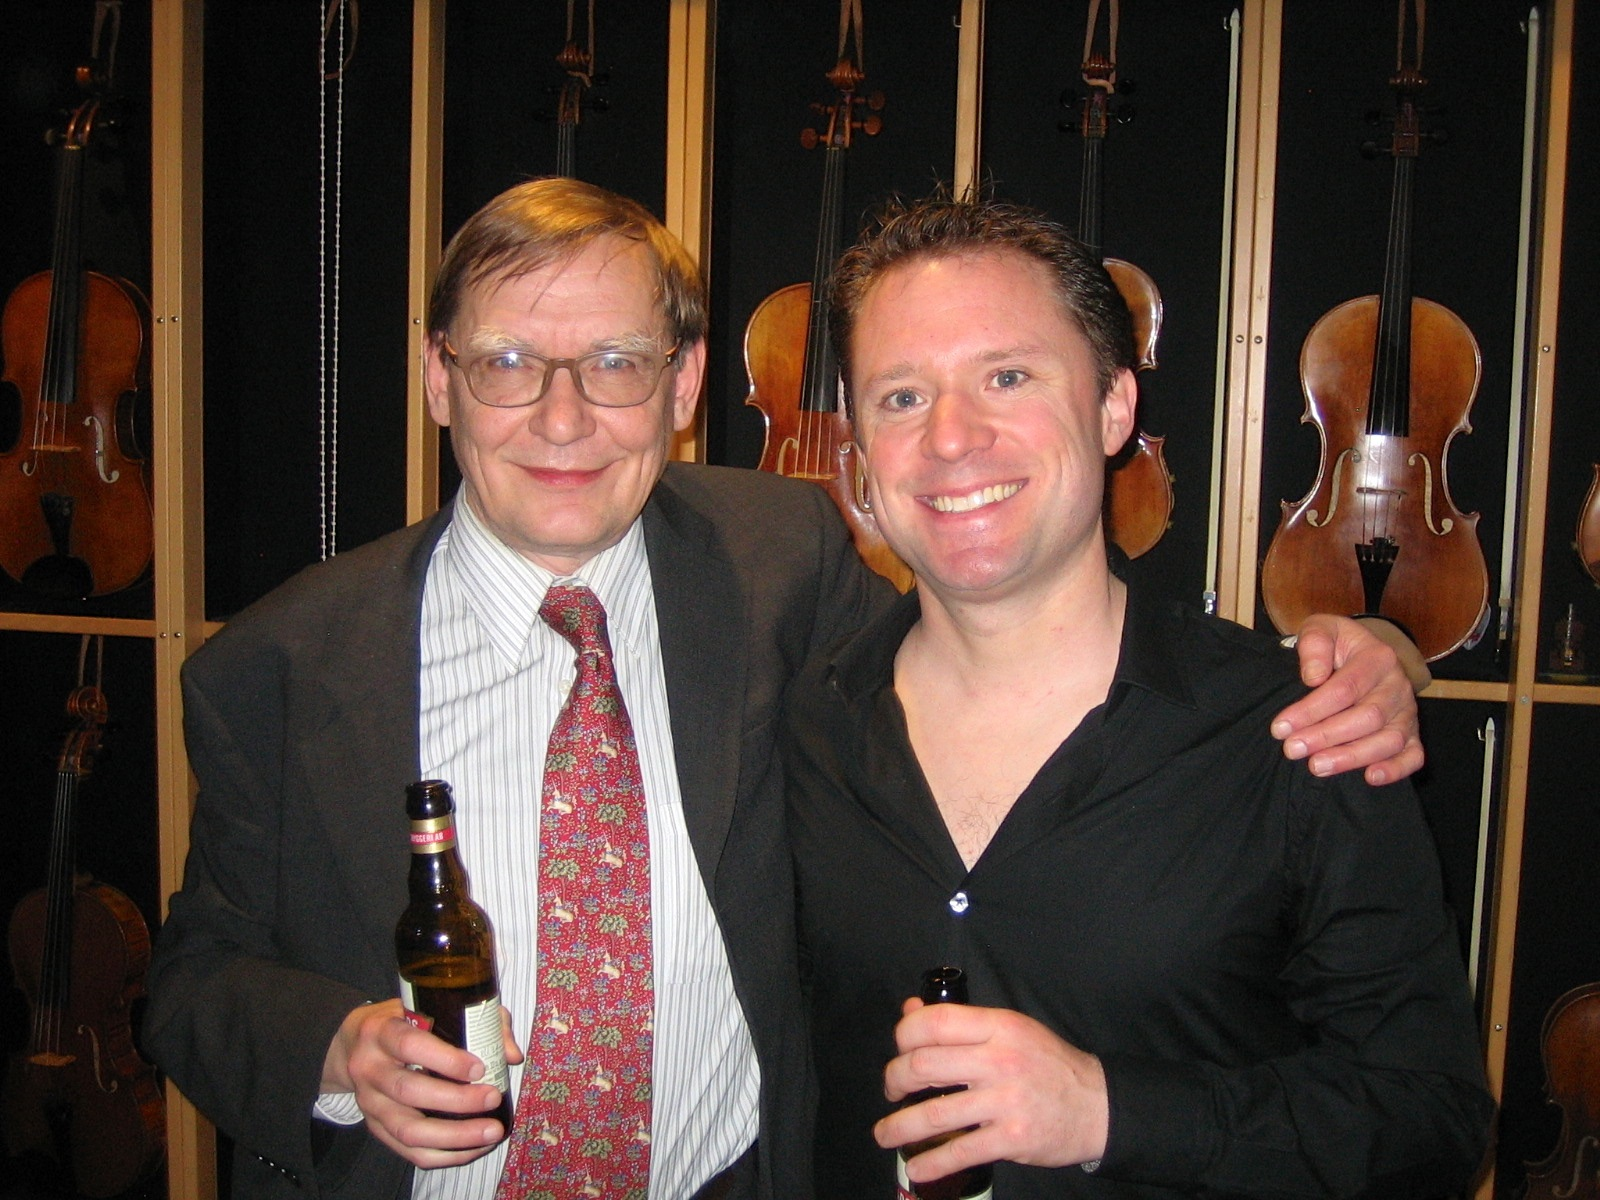 With Kalevi Aho in Gothenberg for the Swedish Premiere of 'Sieidi' in November 2012.